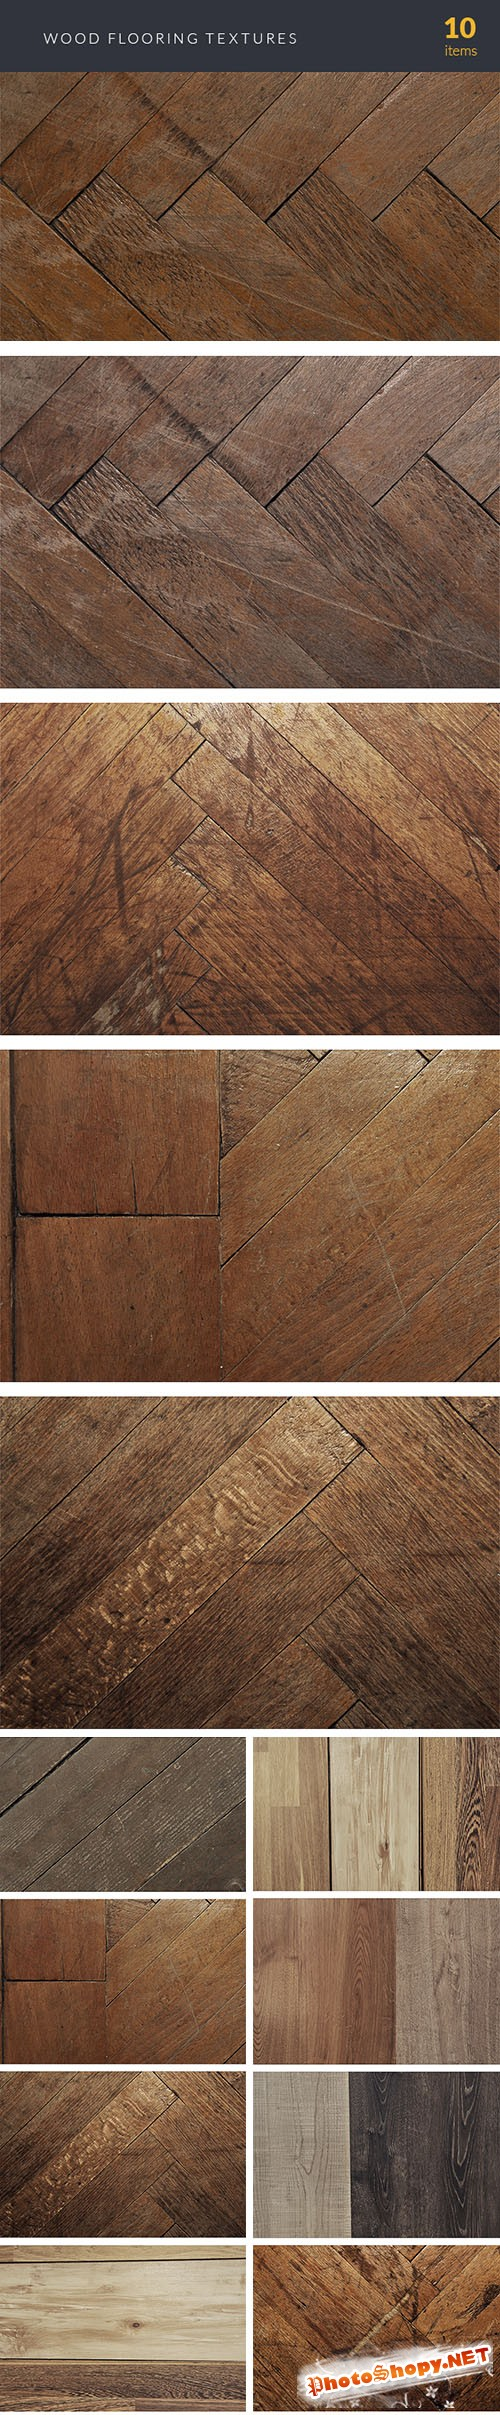 Designtnt - Plywood Textures Set 1